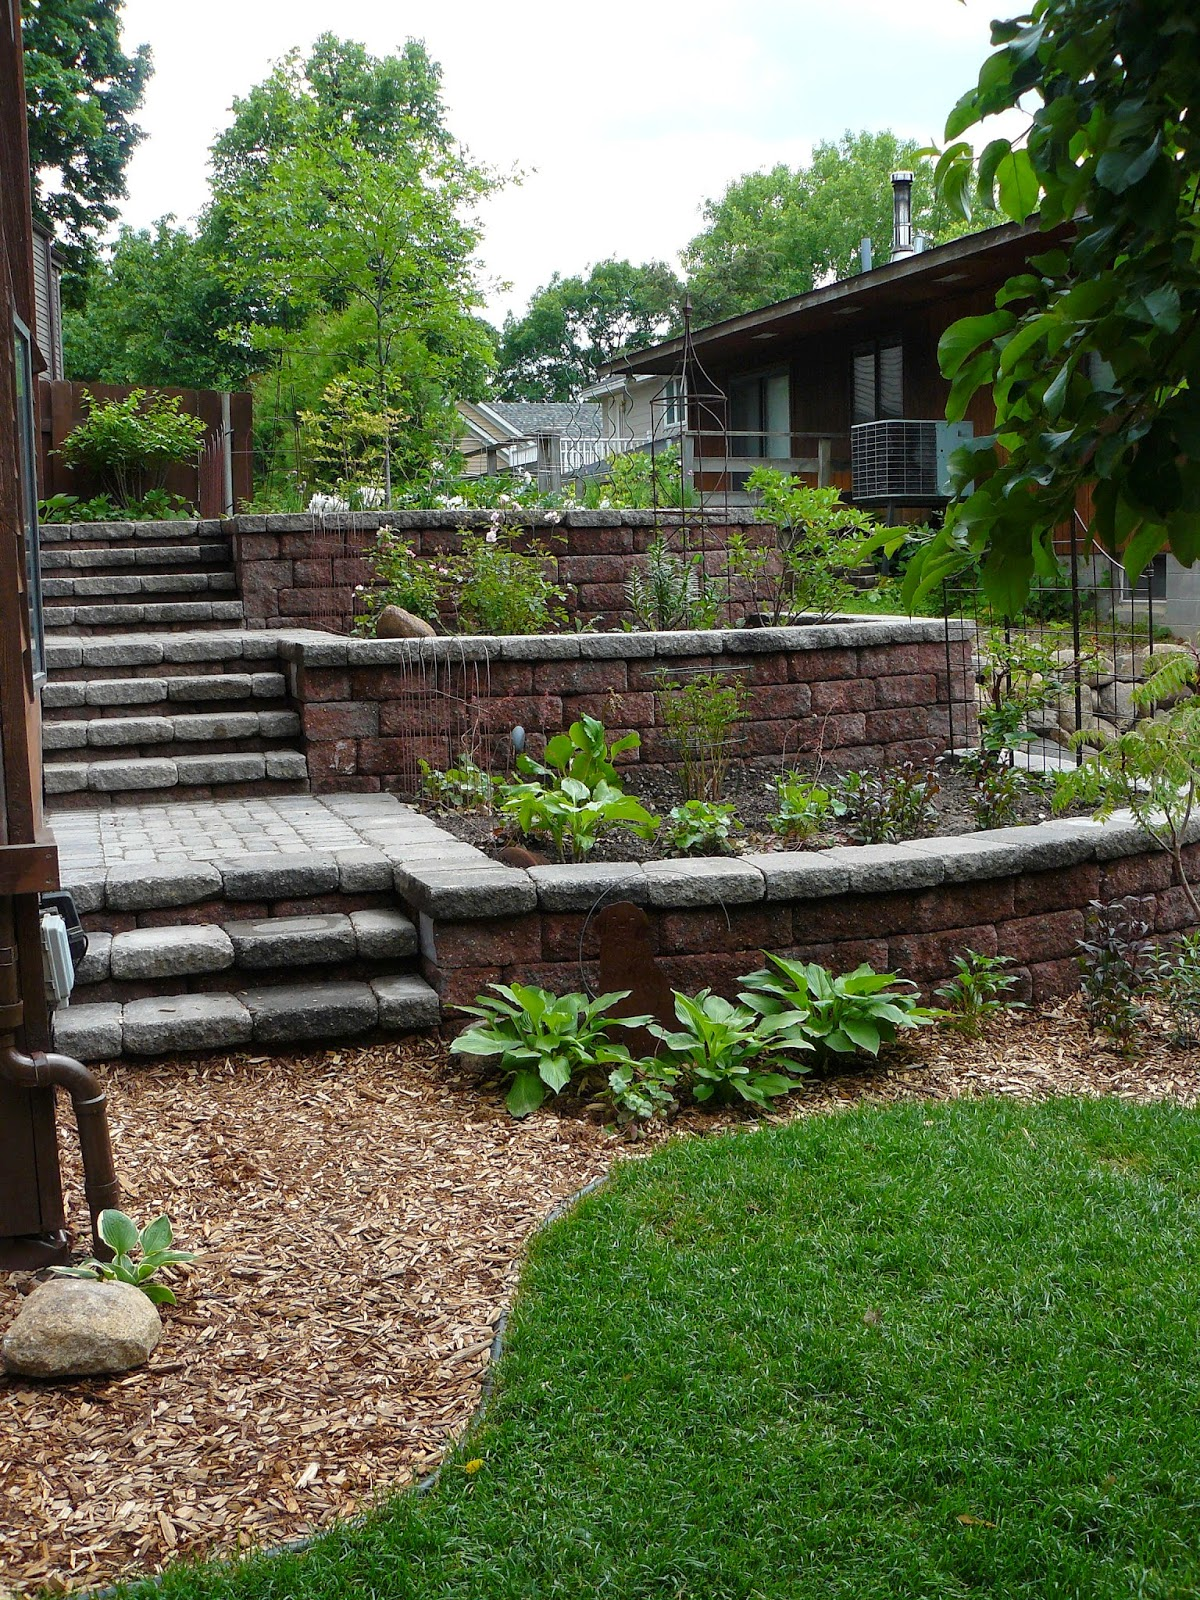 How to find help with a home landscape : Yard and Garden News ...